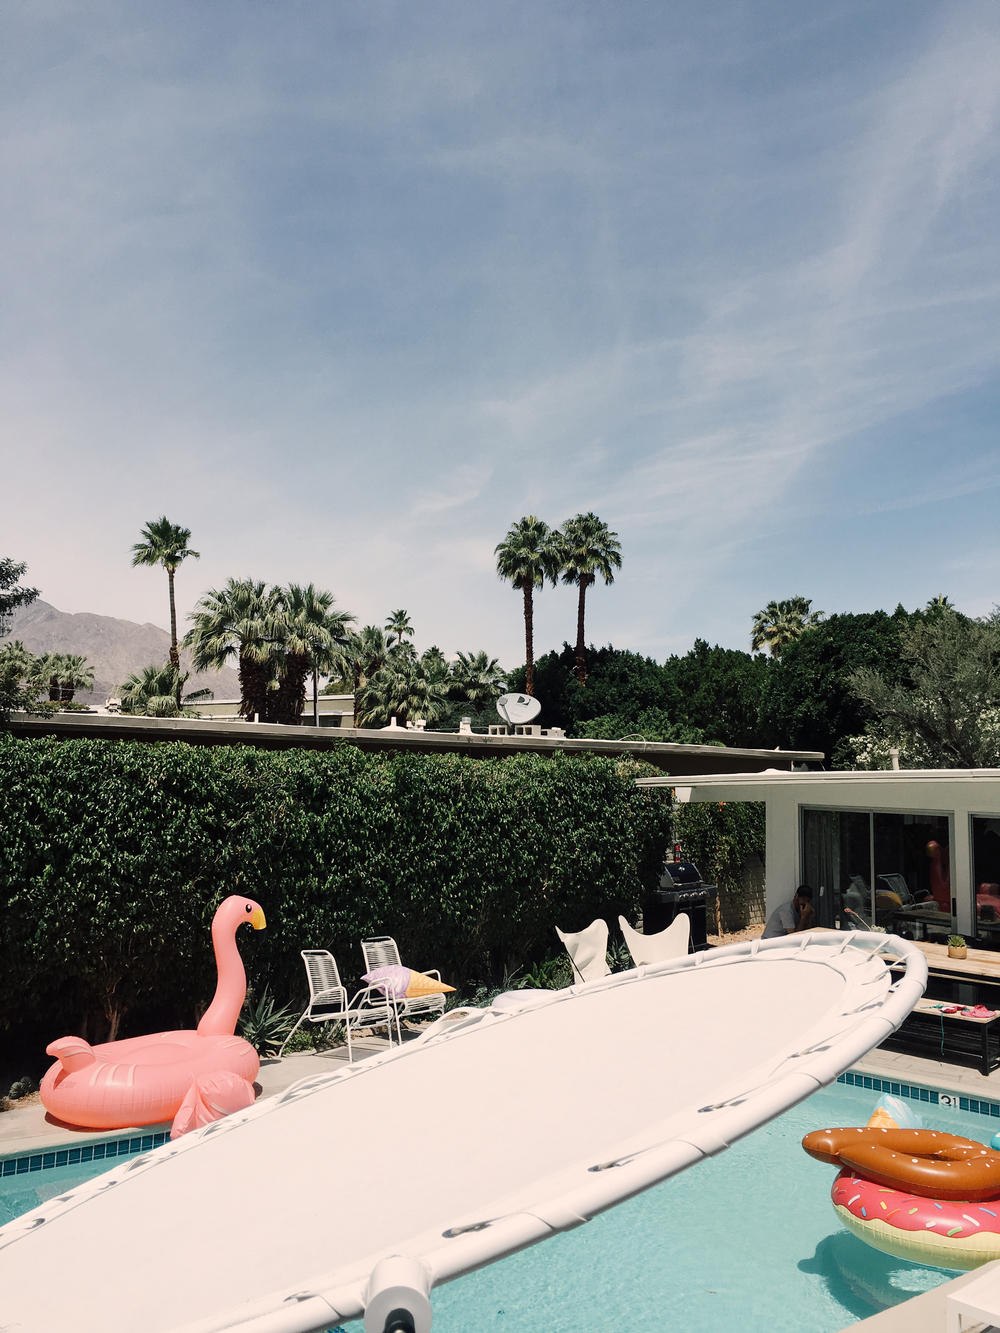 The Amado, Palm Springs by Alia Serban